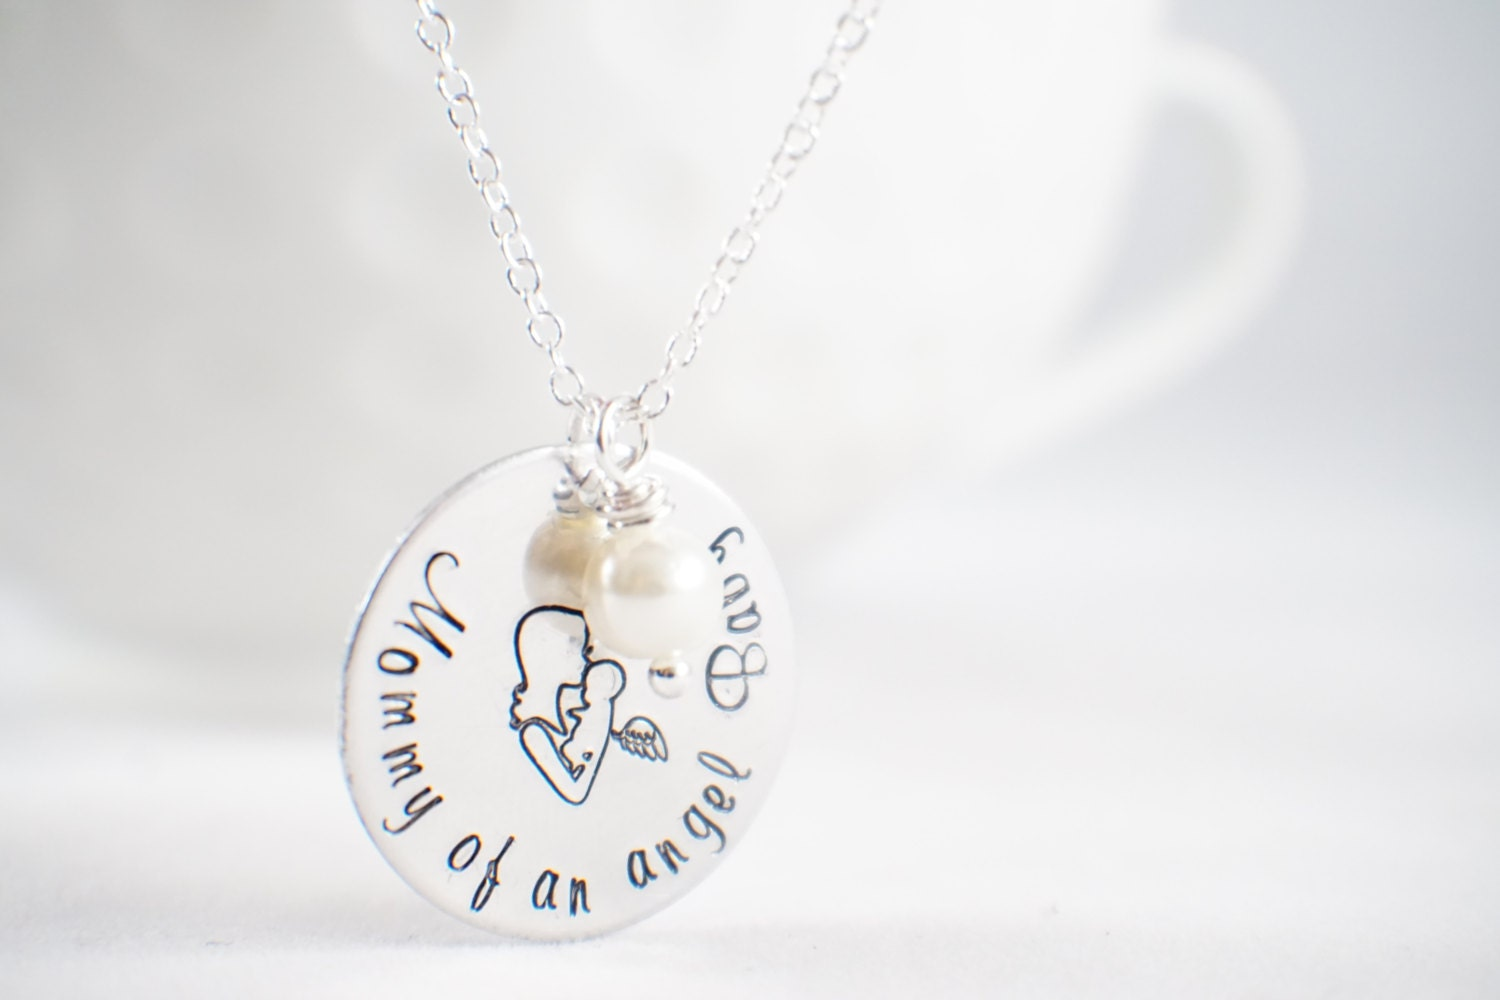 Mommy of an angel baby necklace angel baby memorial necklace mommy of an angel baby necklace angel baby memorial necklace miscarriage necklace loss of baby miscarriage memorial baby memorial aloadofball Choice Image